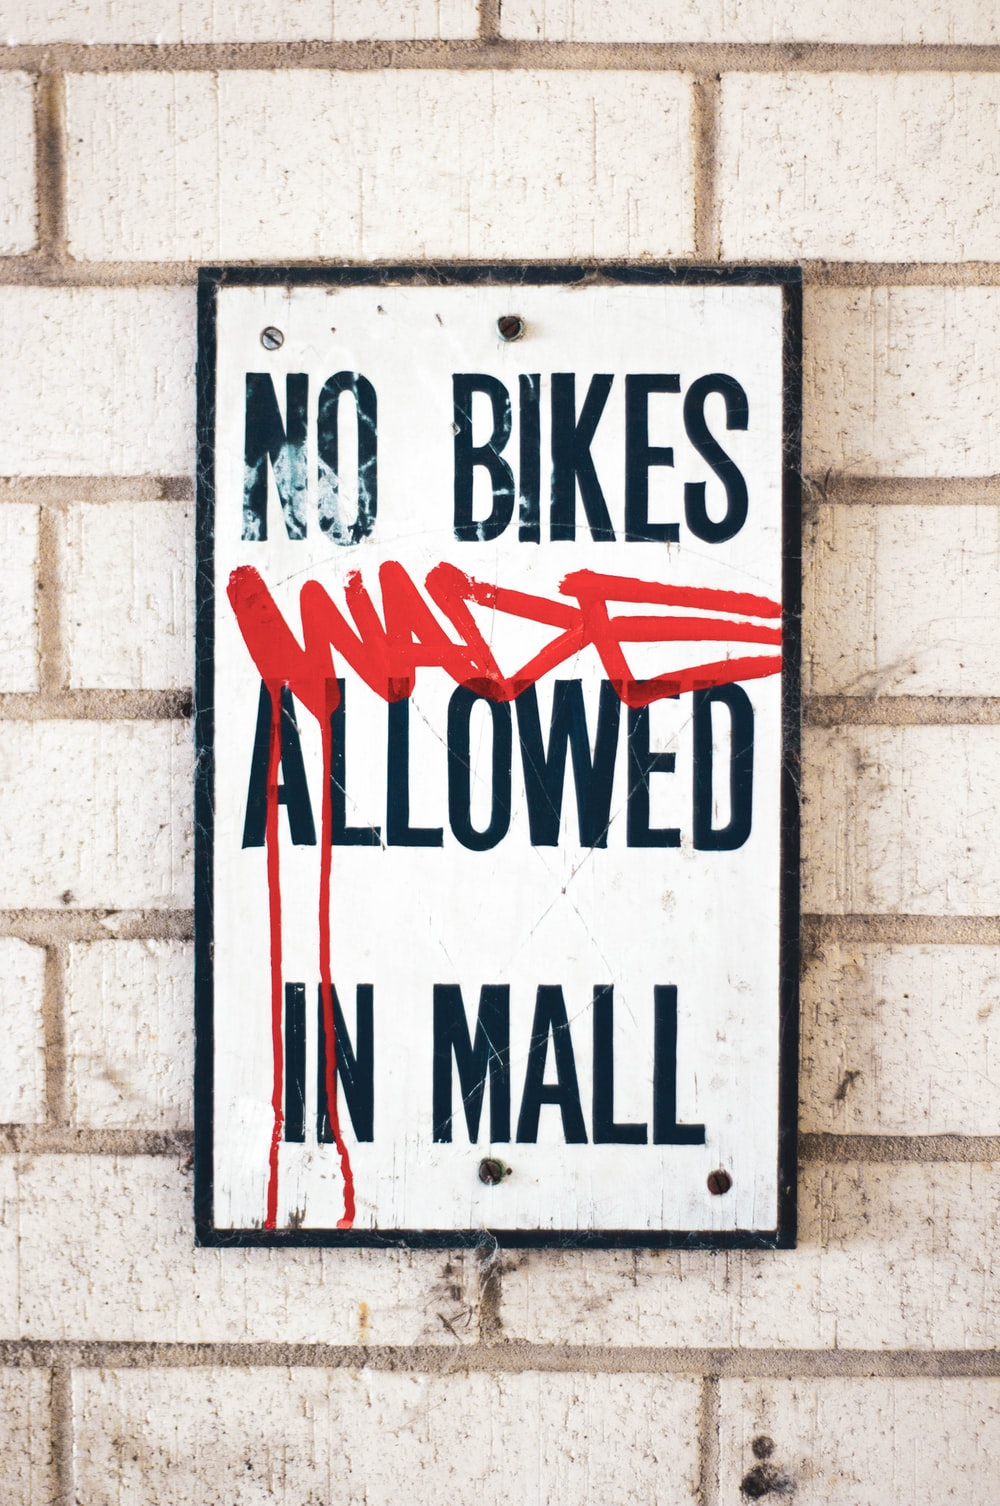 No Bikes Wade Allowed in Mall signage